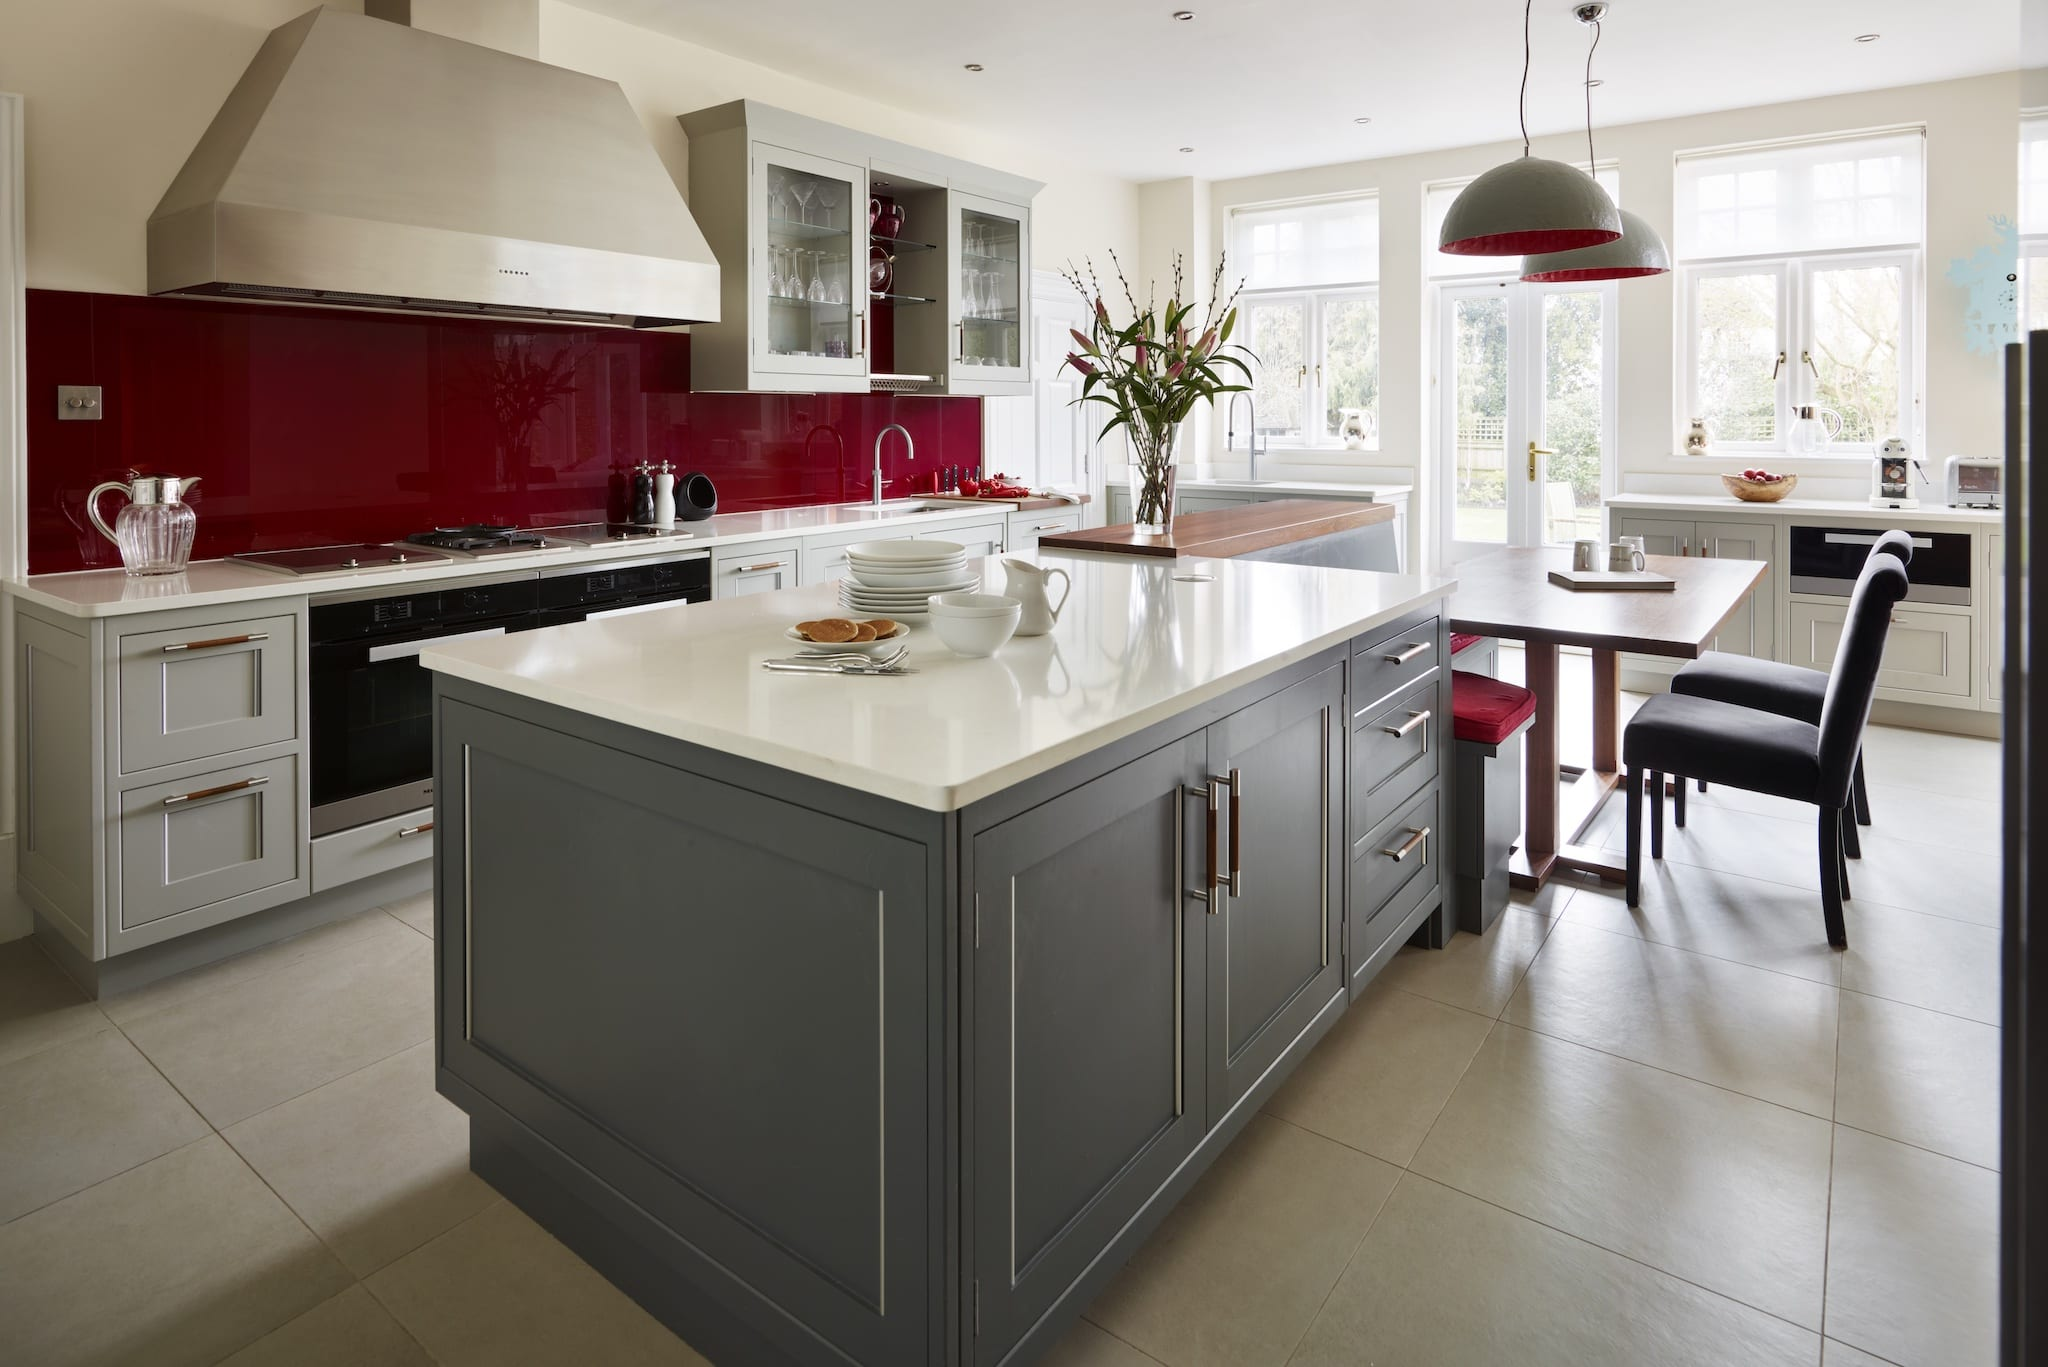 In Line With A Growing Demand For Entertaining Kitchens, Popular Appliances  Are Also Changing. According To Houzz, 18% Of People Put A Boiling Water  Tap In ...